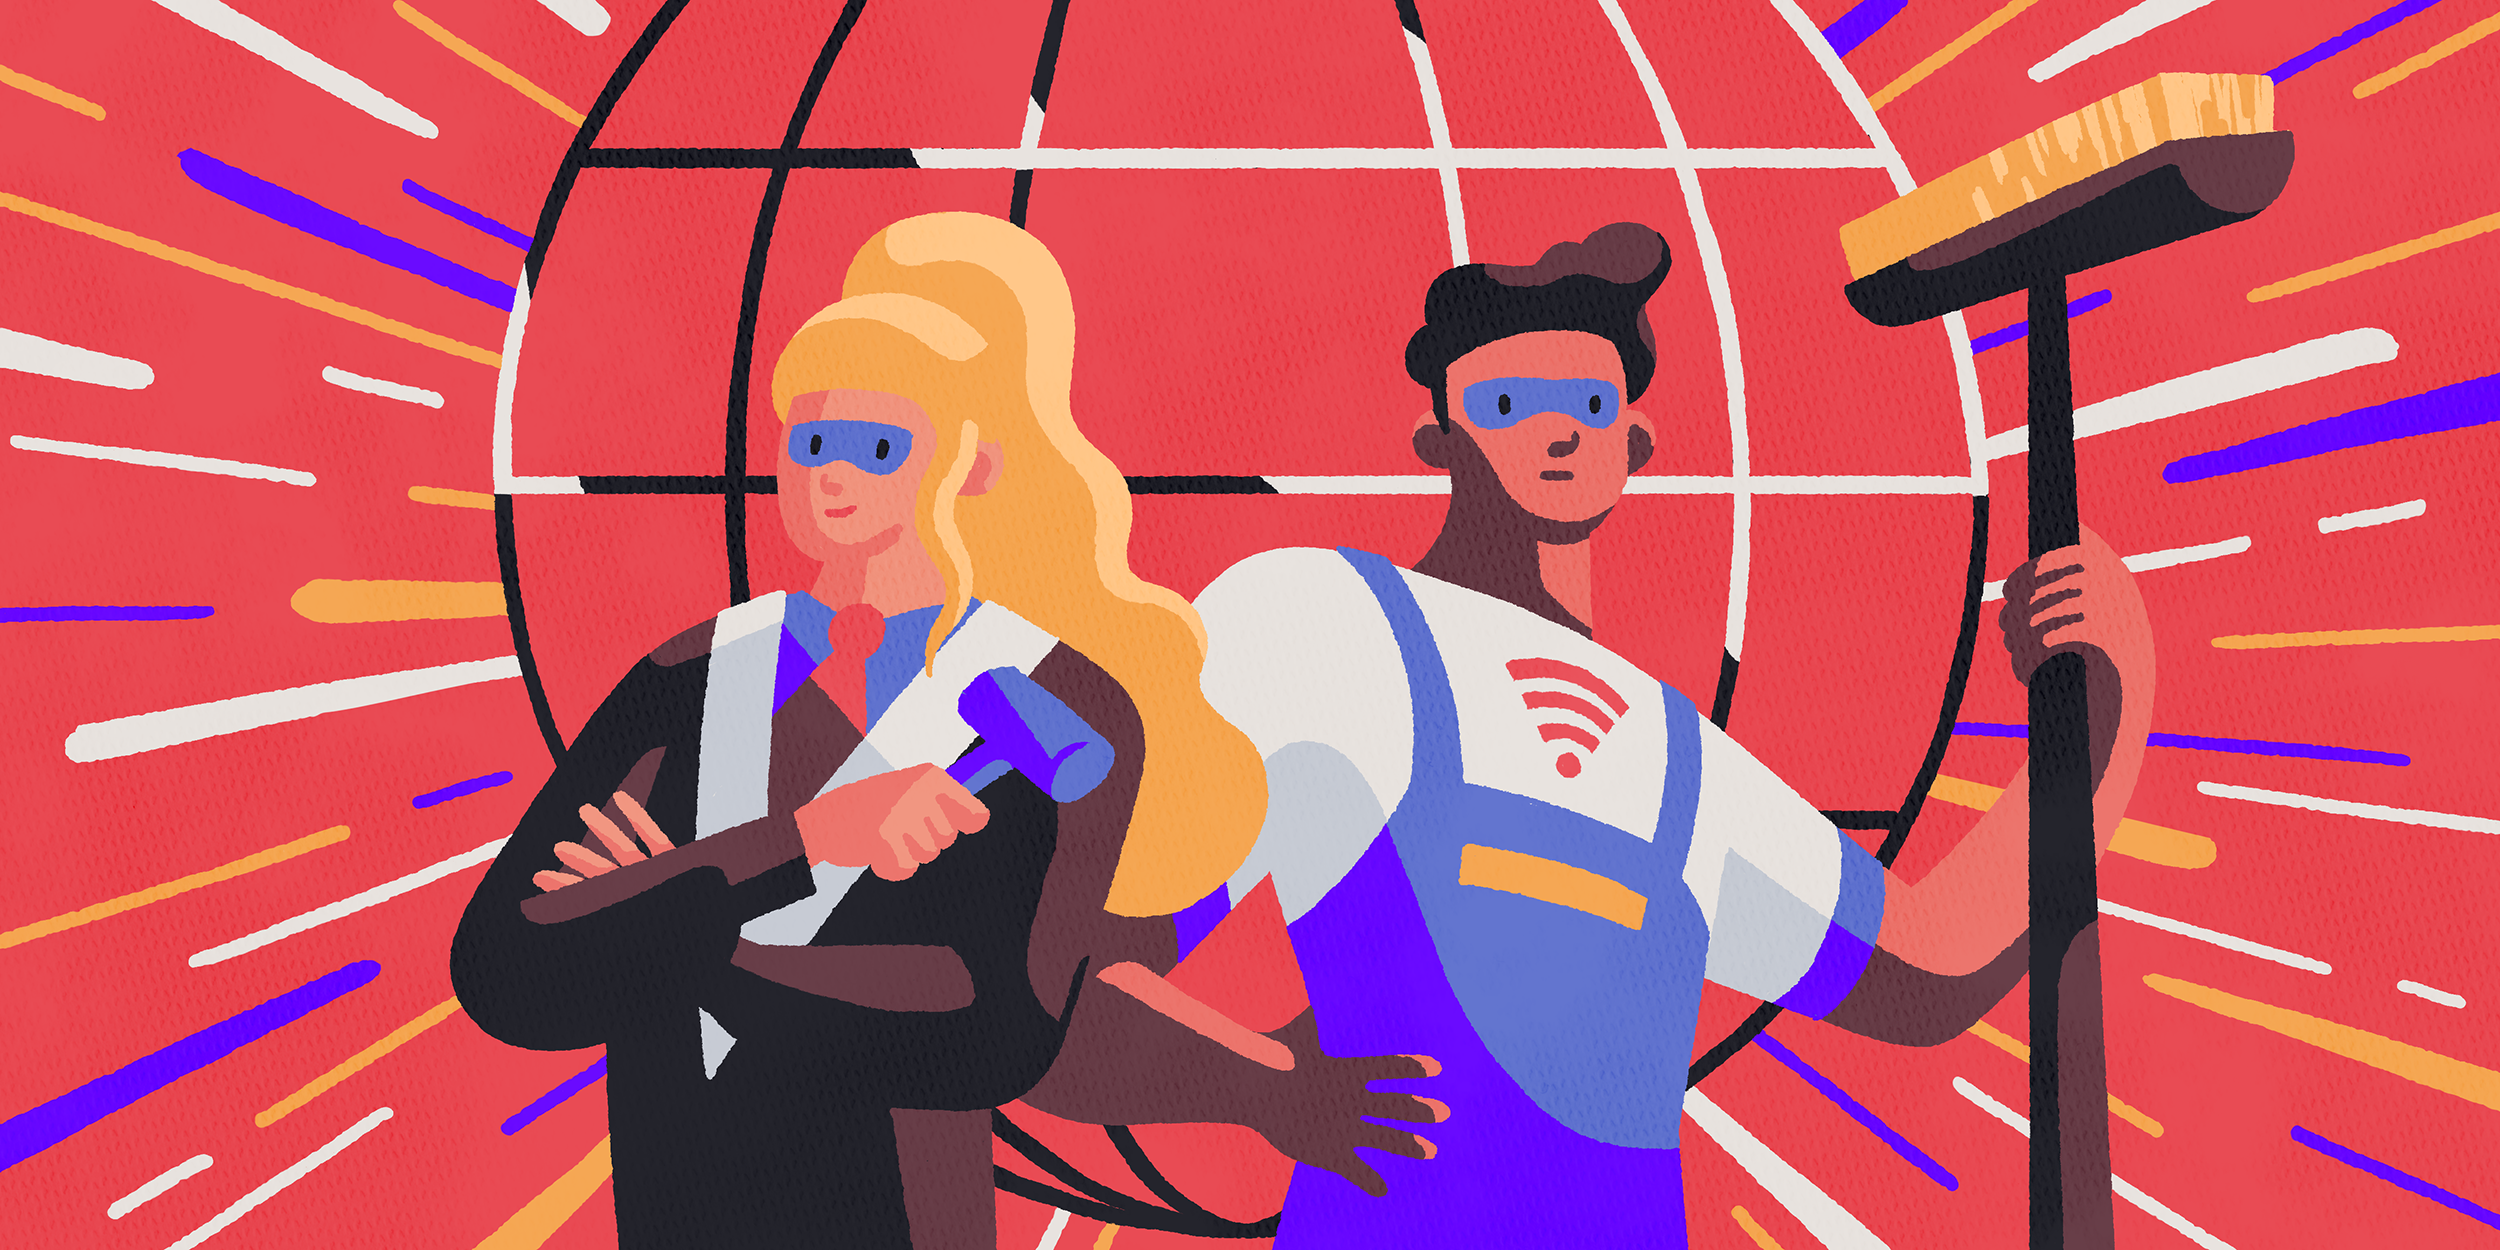 Your Speech, Their Rules: Meet the People Who Guard the Internet